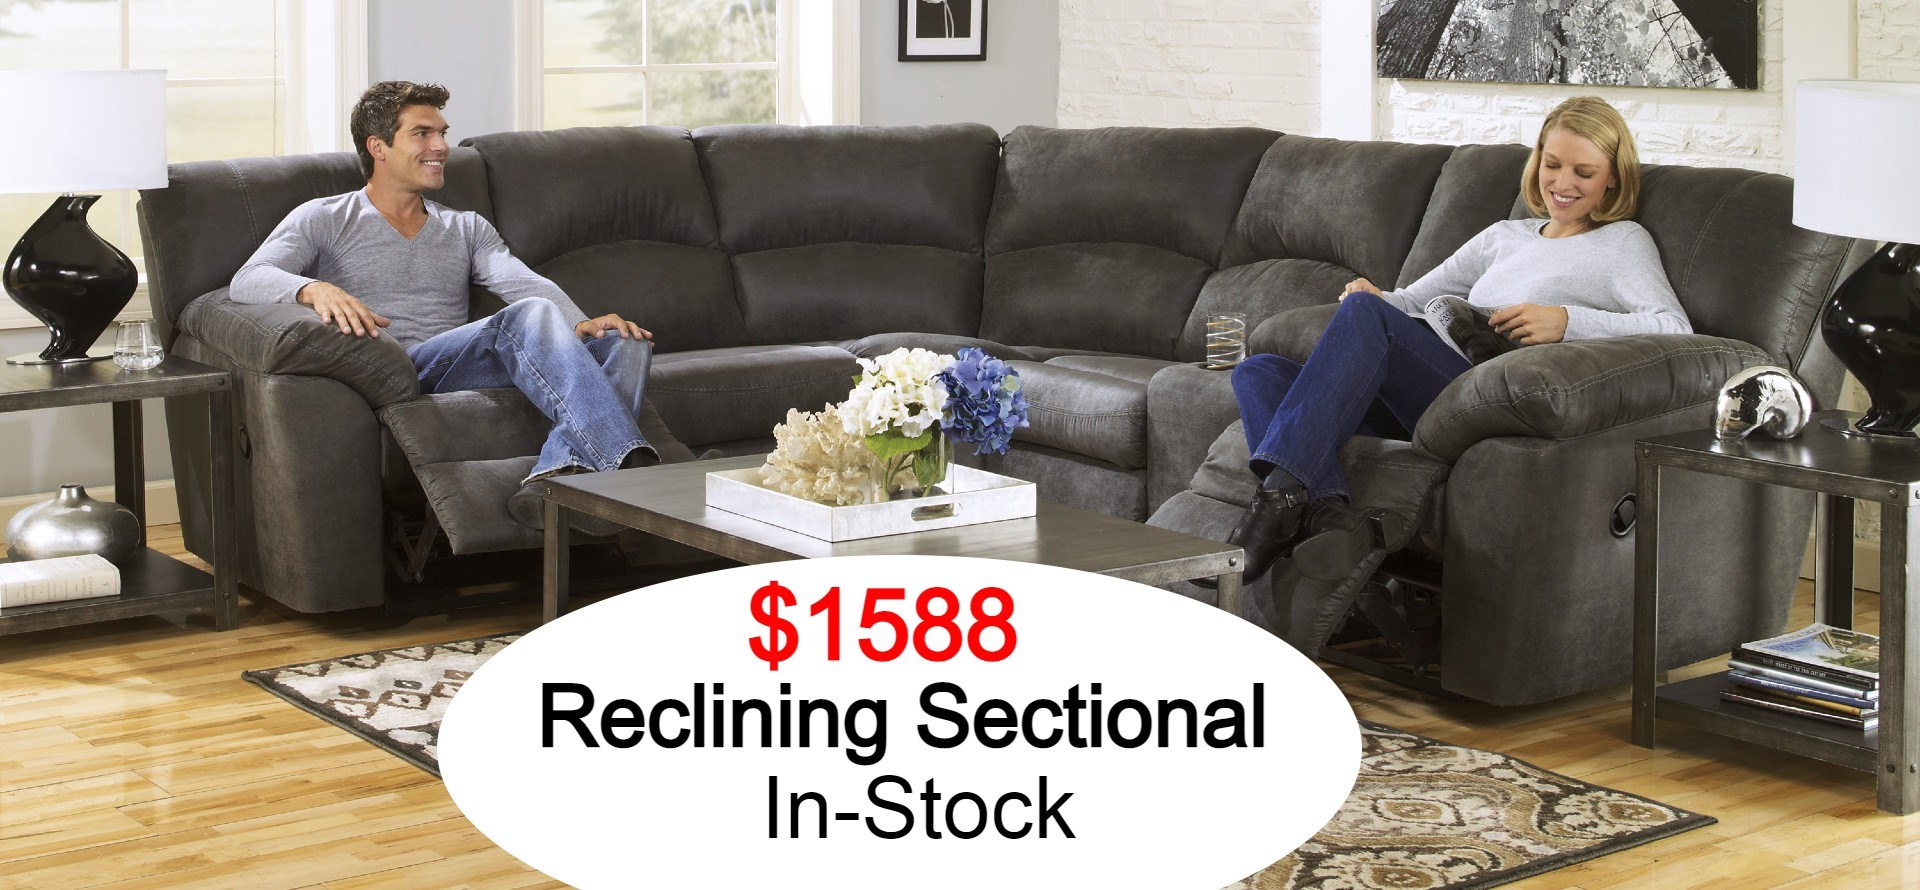 $1548 Sectional